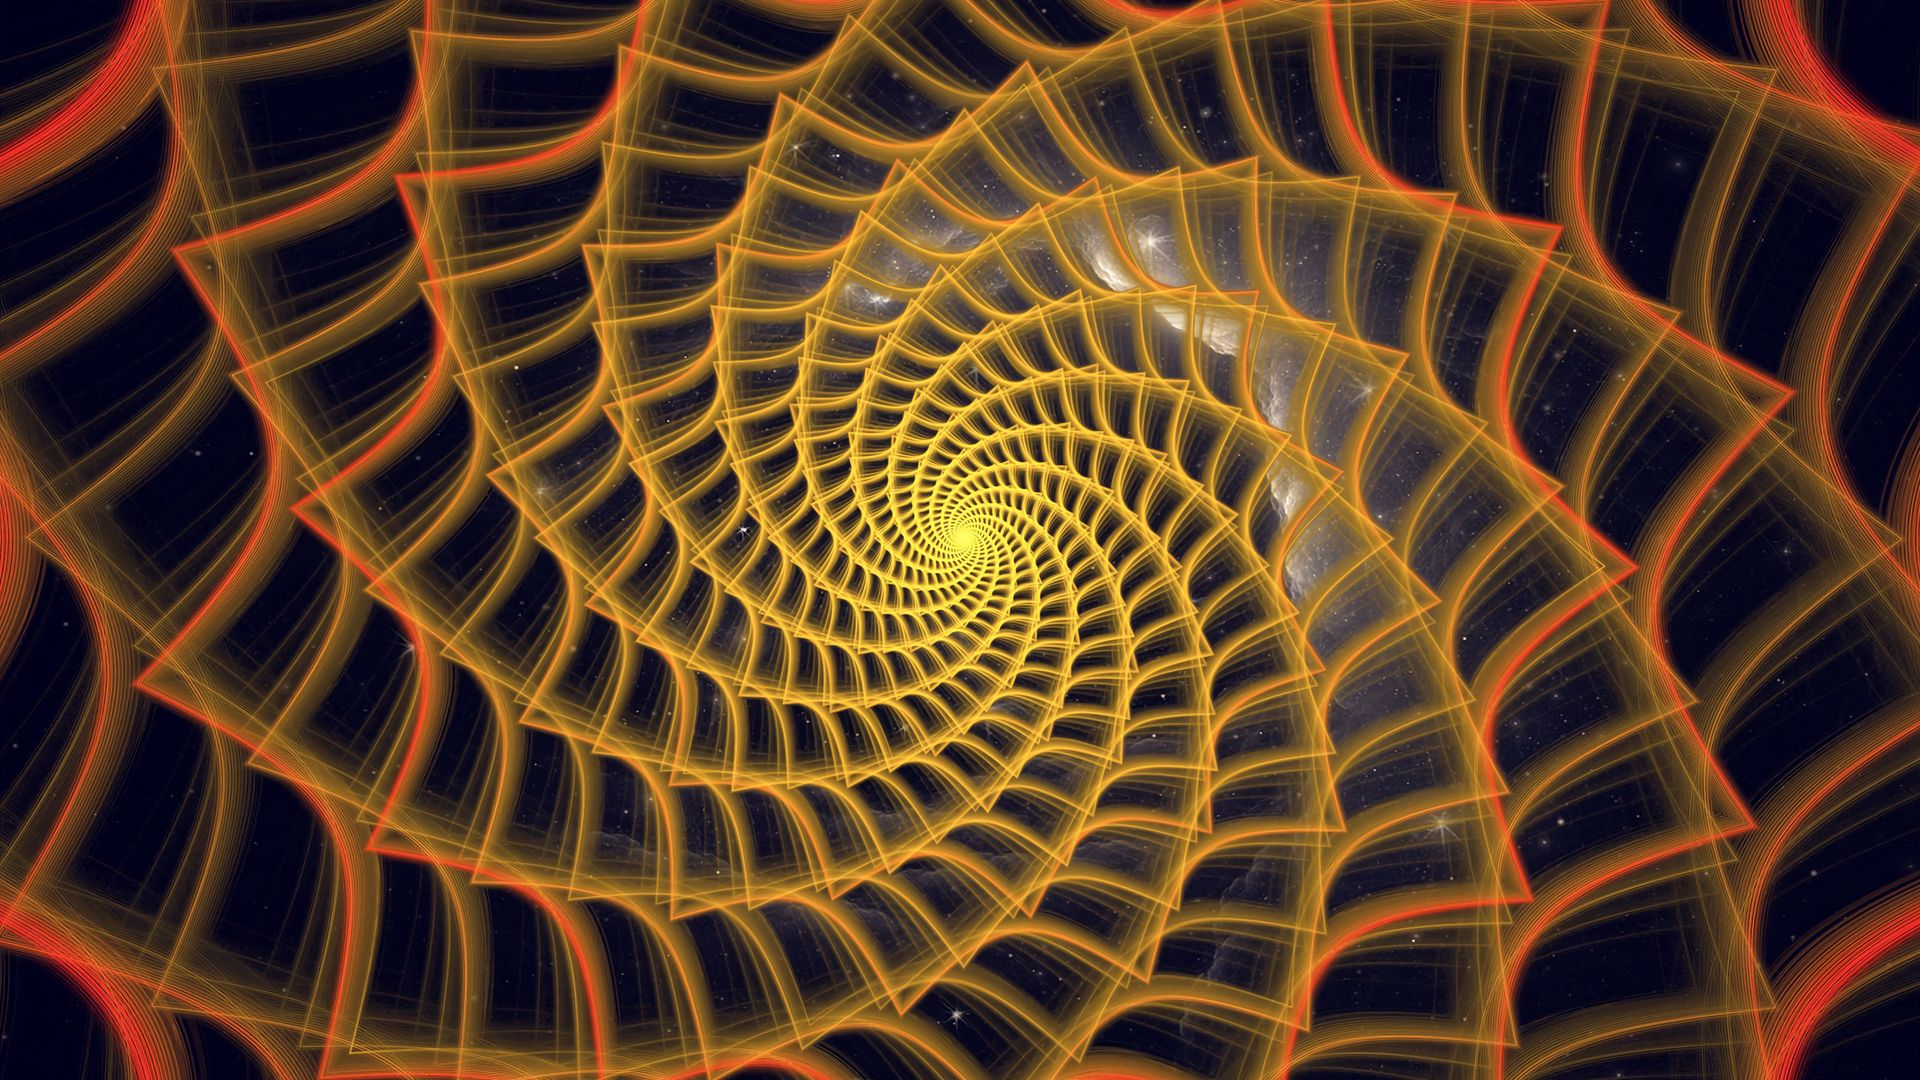 1920x1080 Wallpaper spiral, twisted, tangled, fractal, abstraction